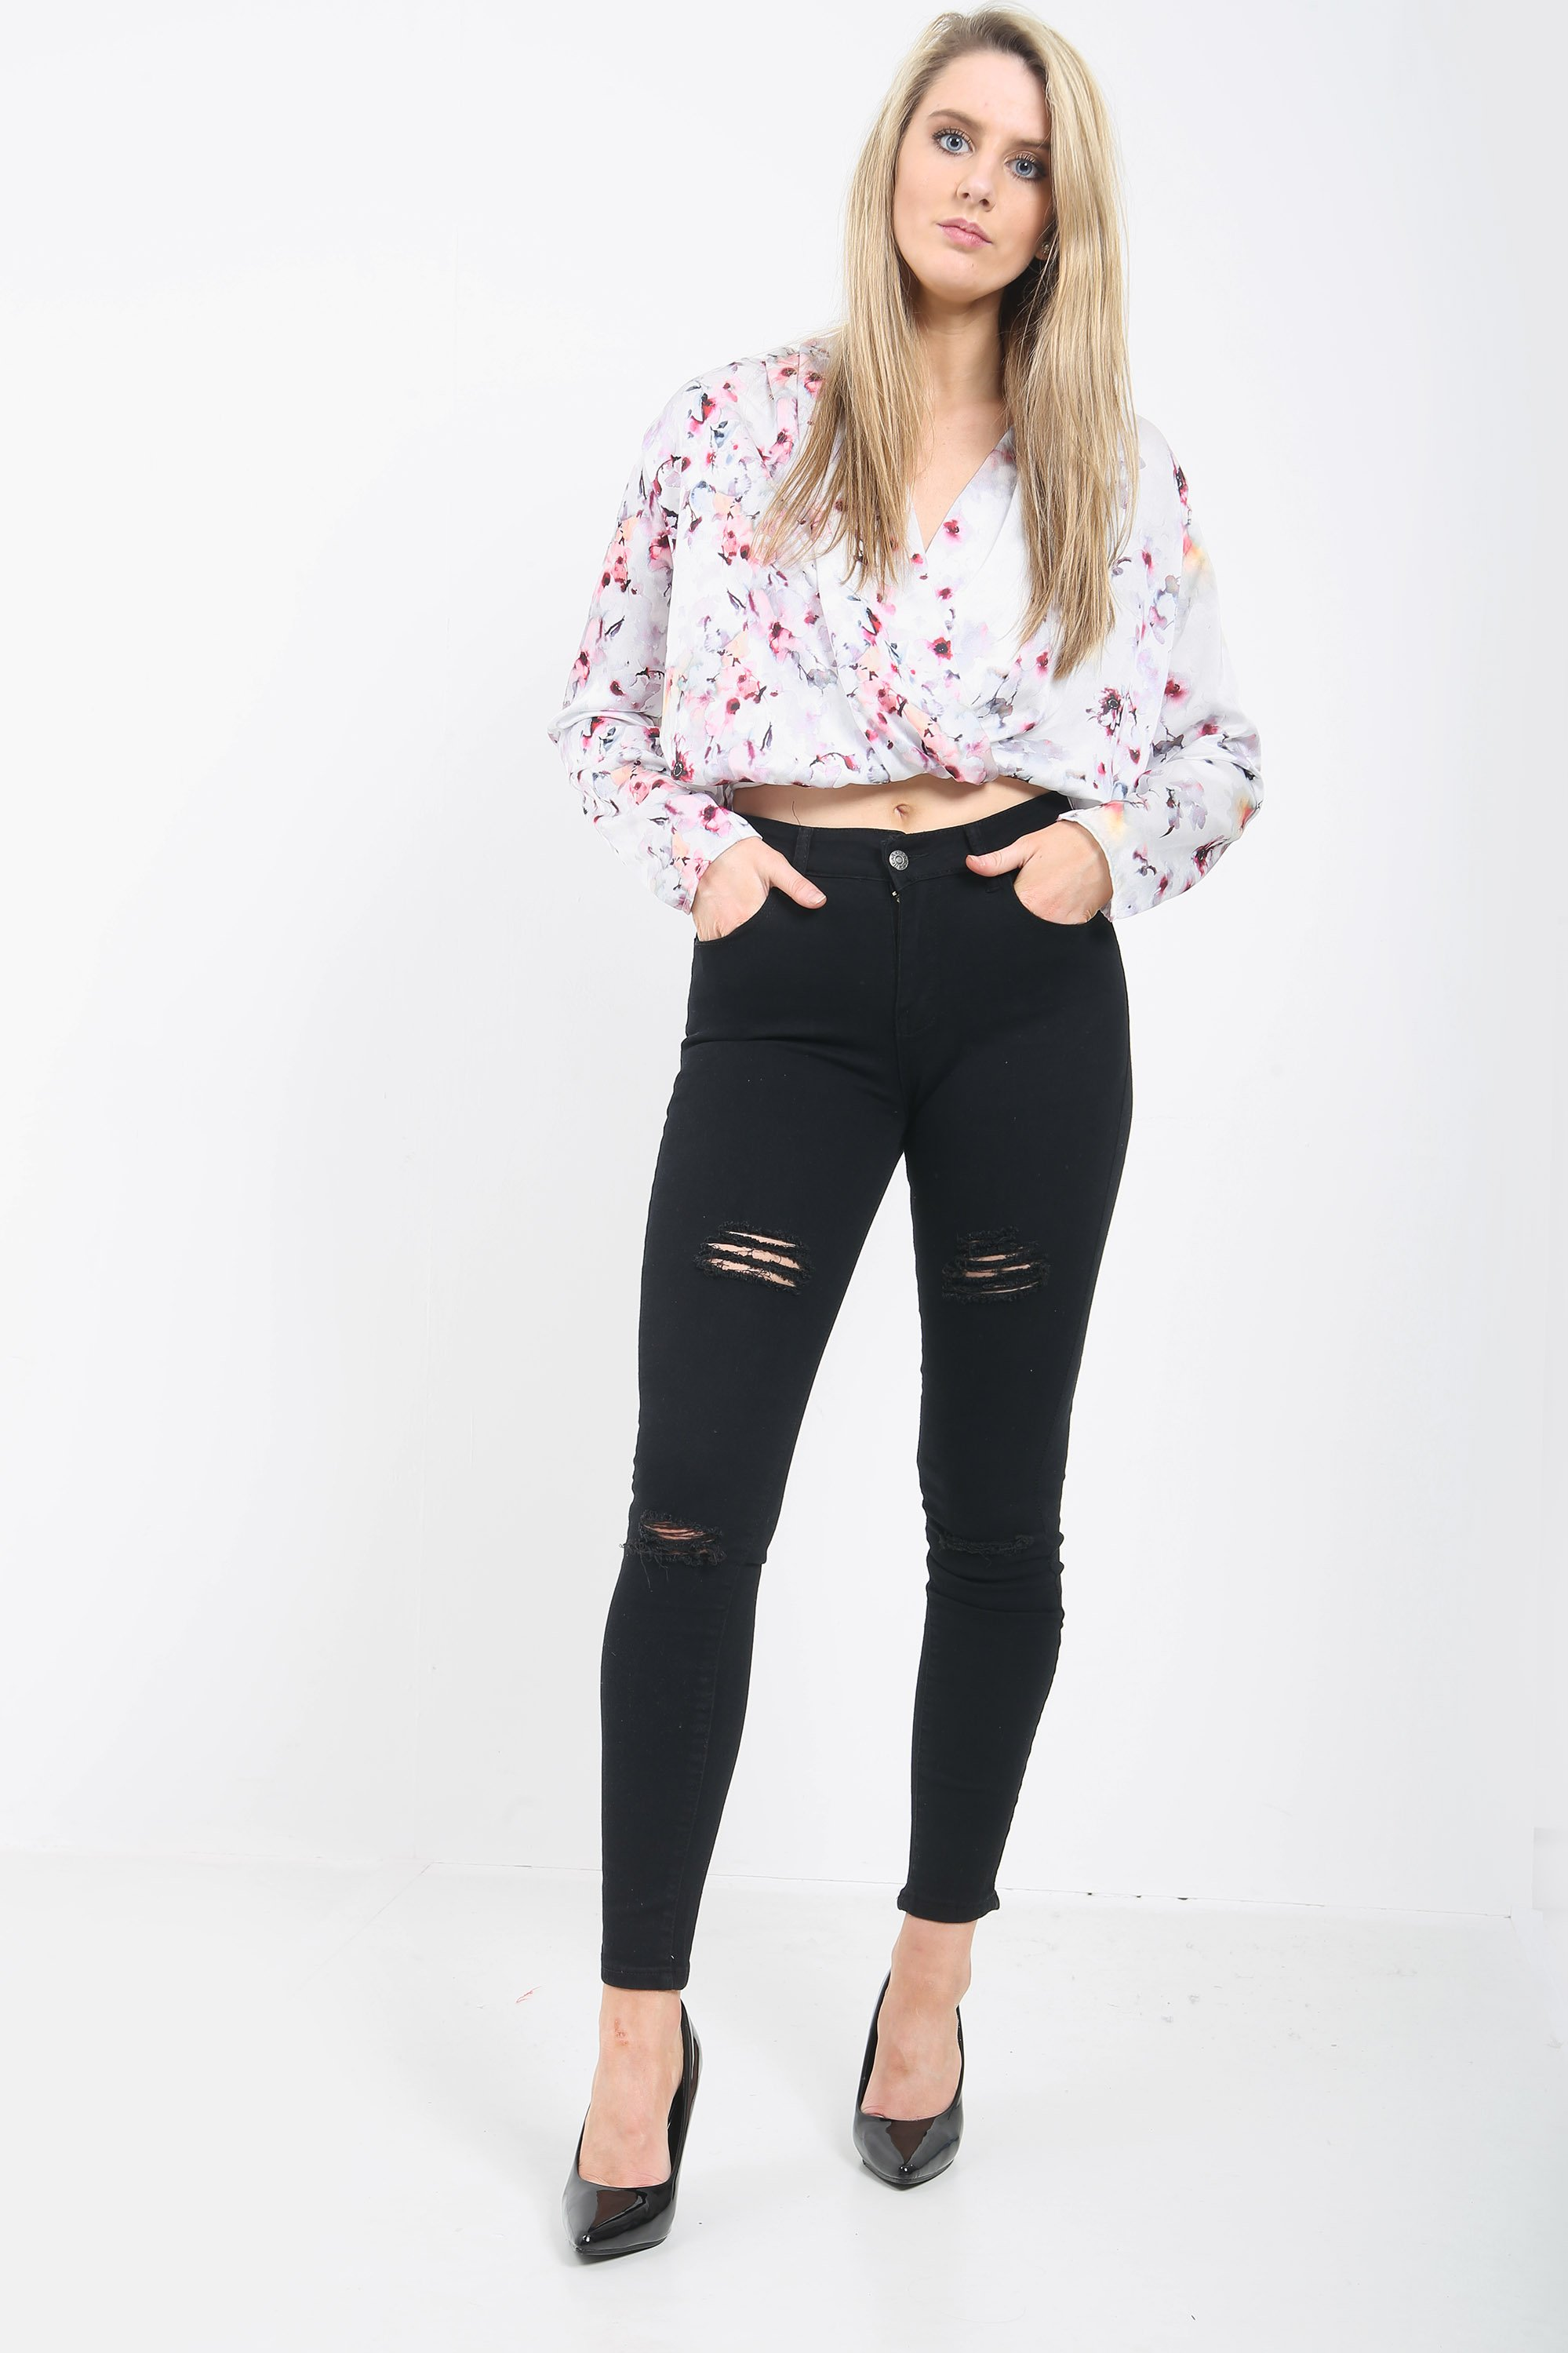 BLACK LADIES HIGH WAISTED JEANS WOMEN SKINNY JEANS